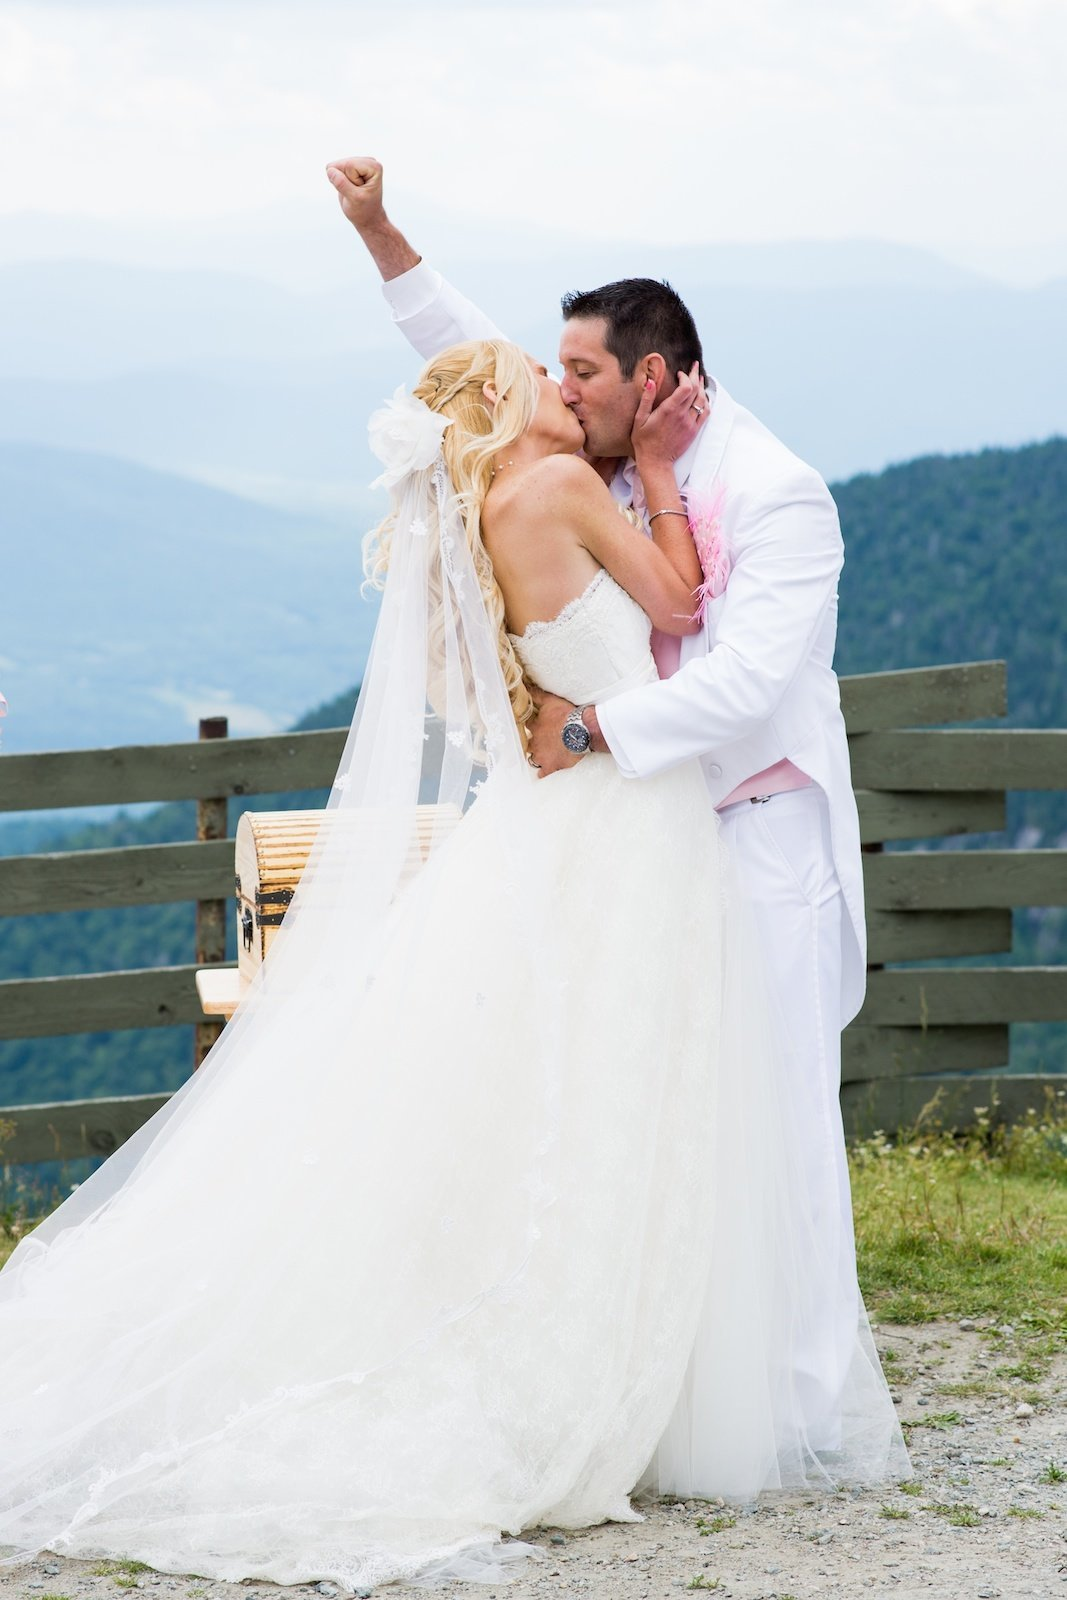 outdoor wedding ceremony at Jay Peak elevation